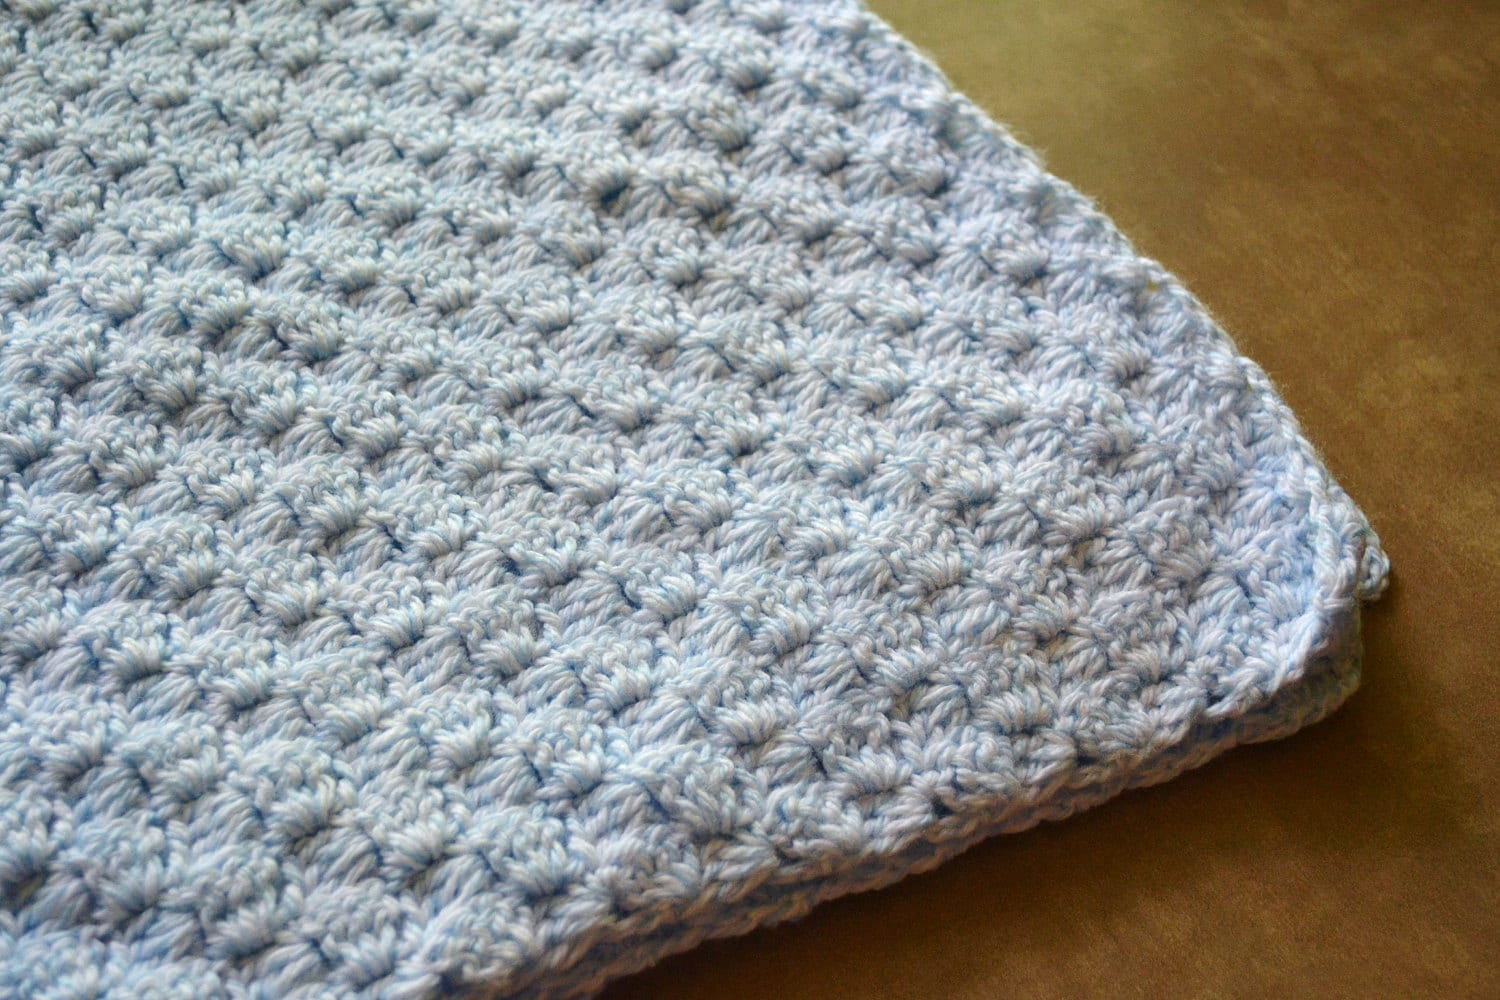 Crochet Pattern For Owl Baby Afghan : Baby Blanket Crocheted Blue Basket Weave Crib Size By